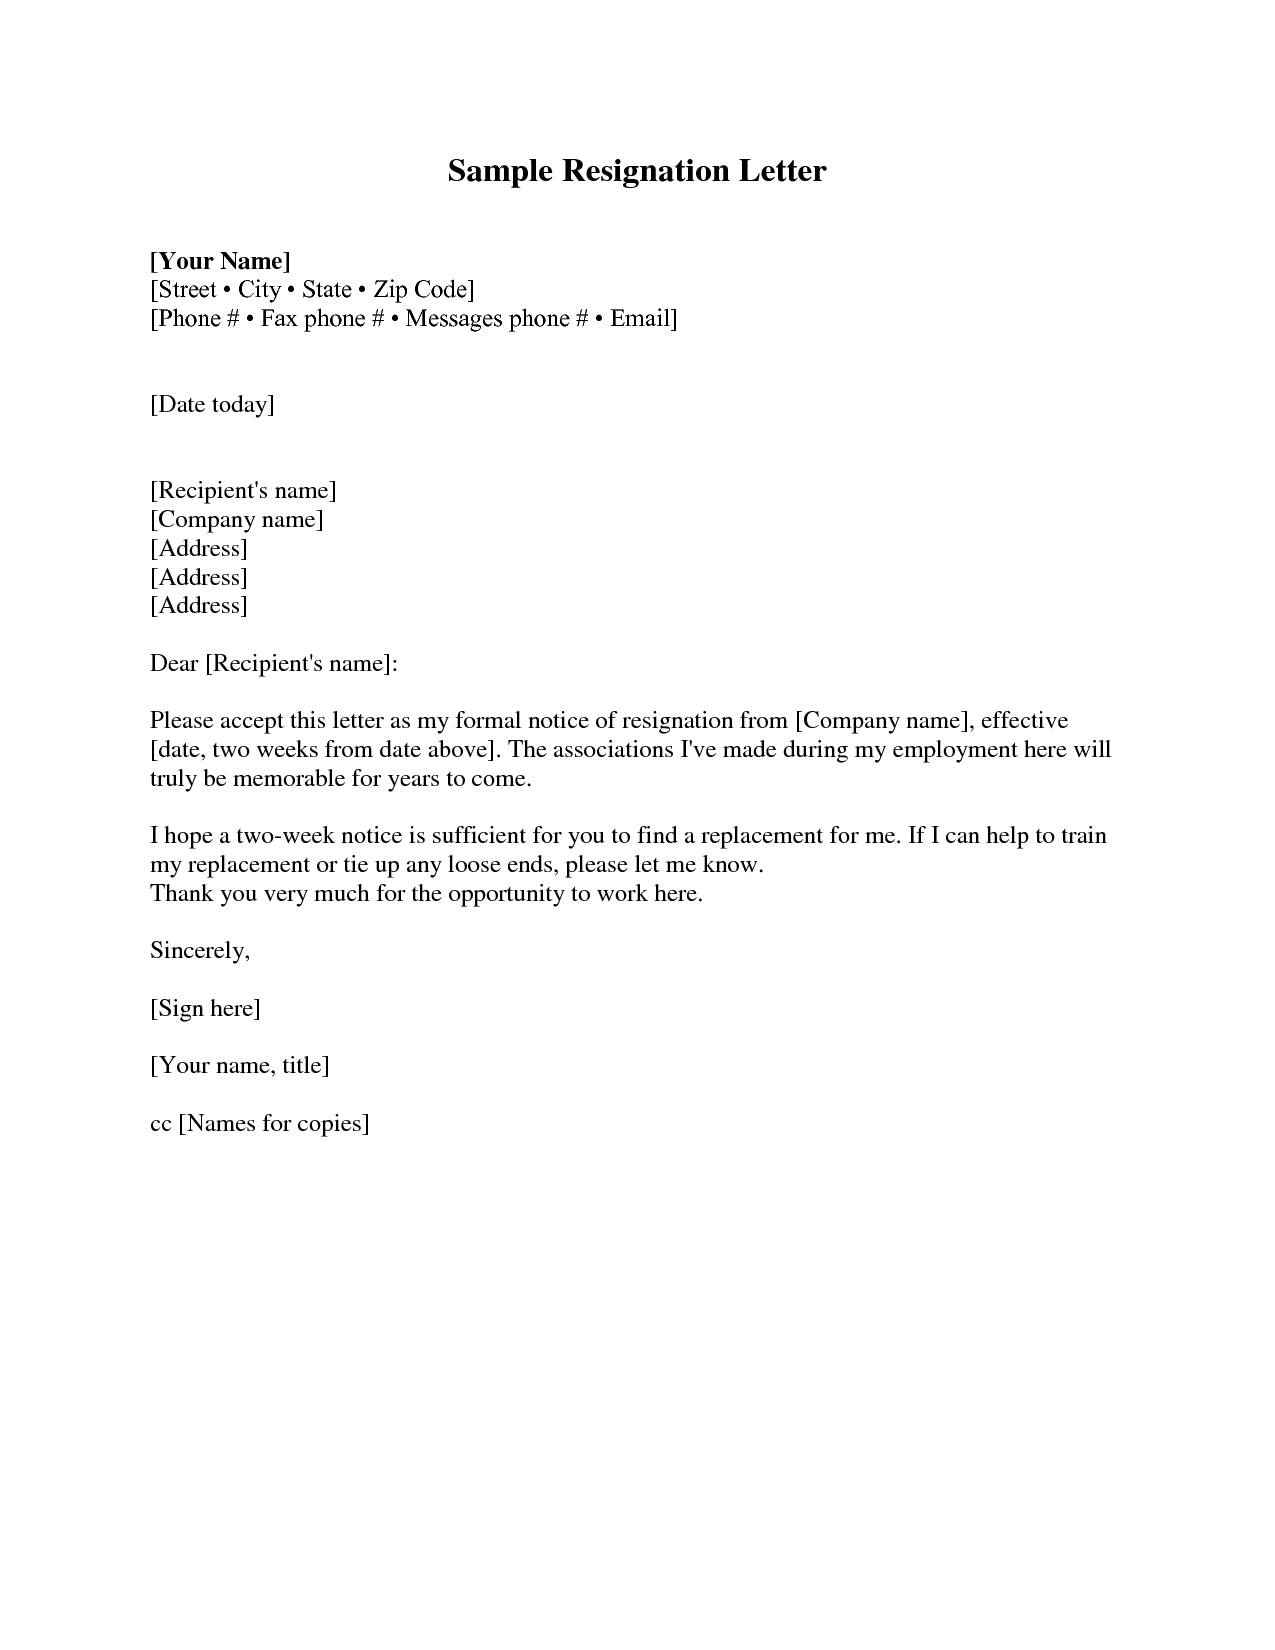 Letter Of Separation From Employer Template - Resignation Letter Sample 2 Weeks Notice Free2img